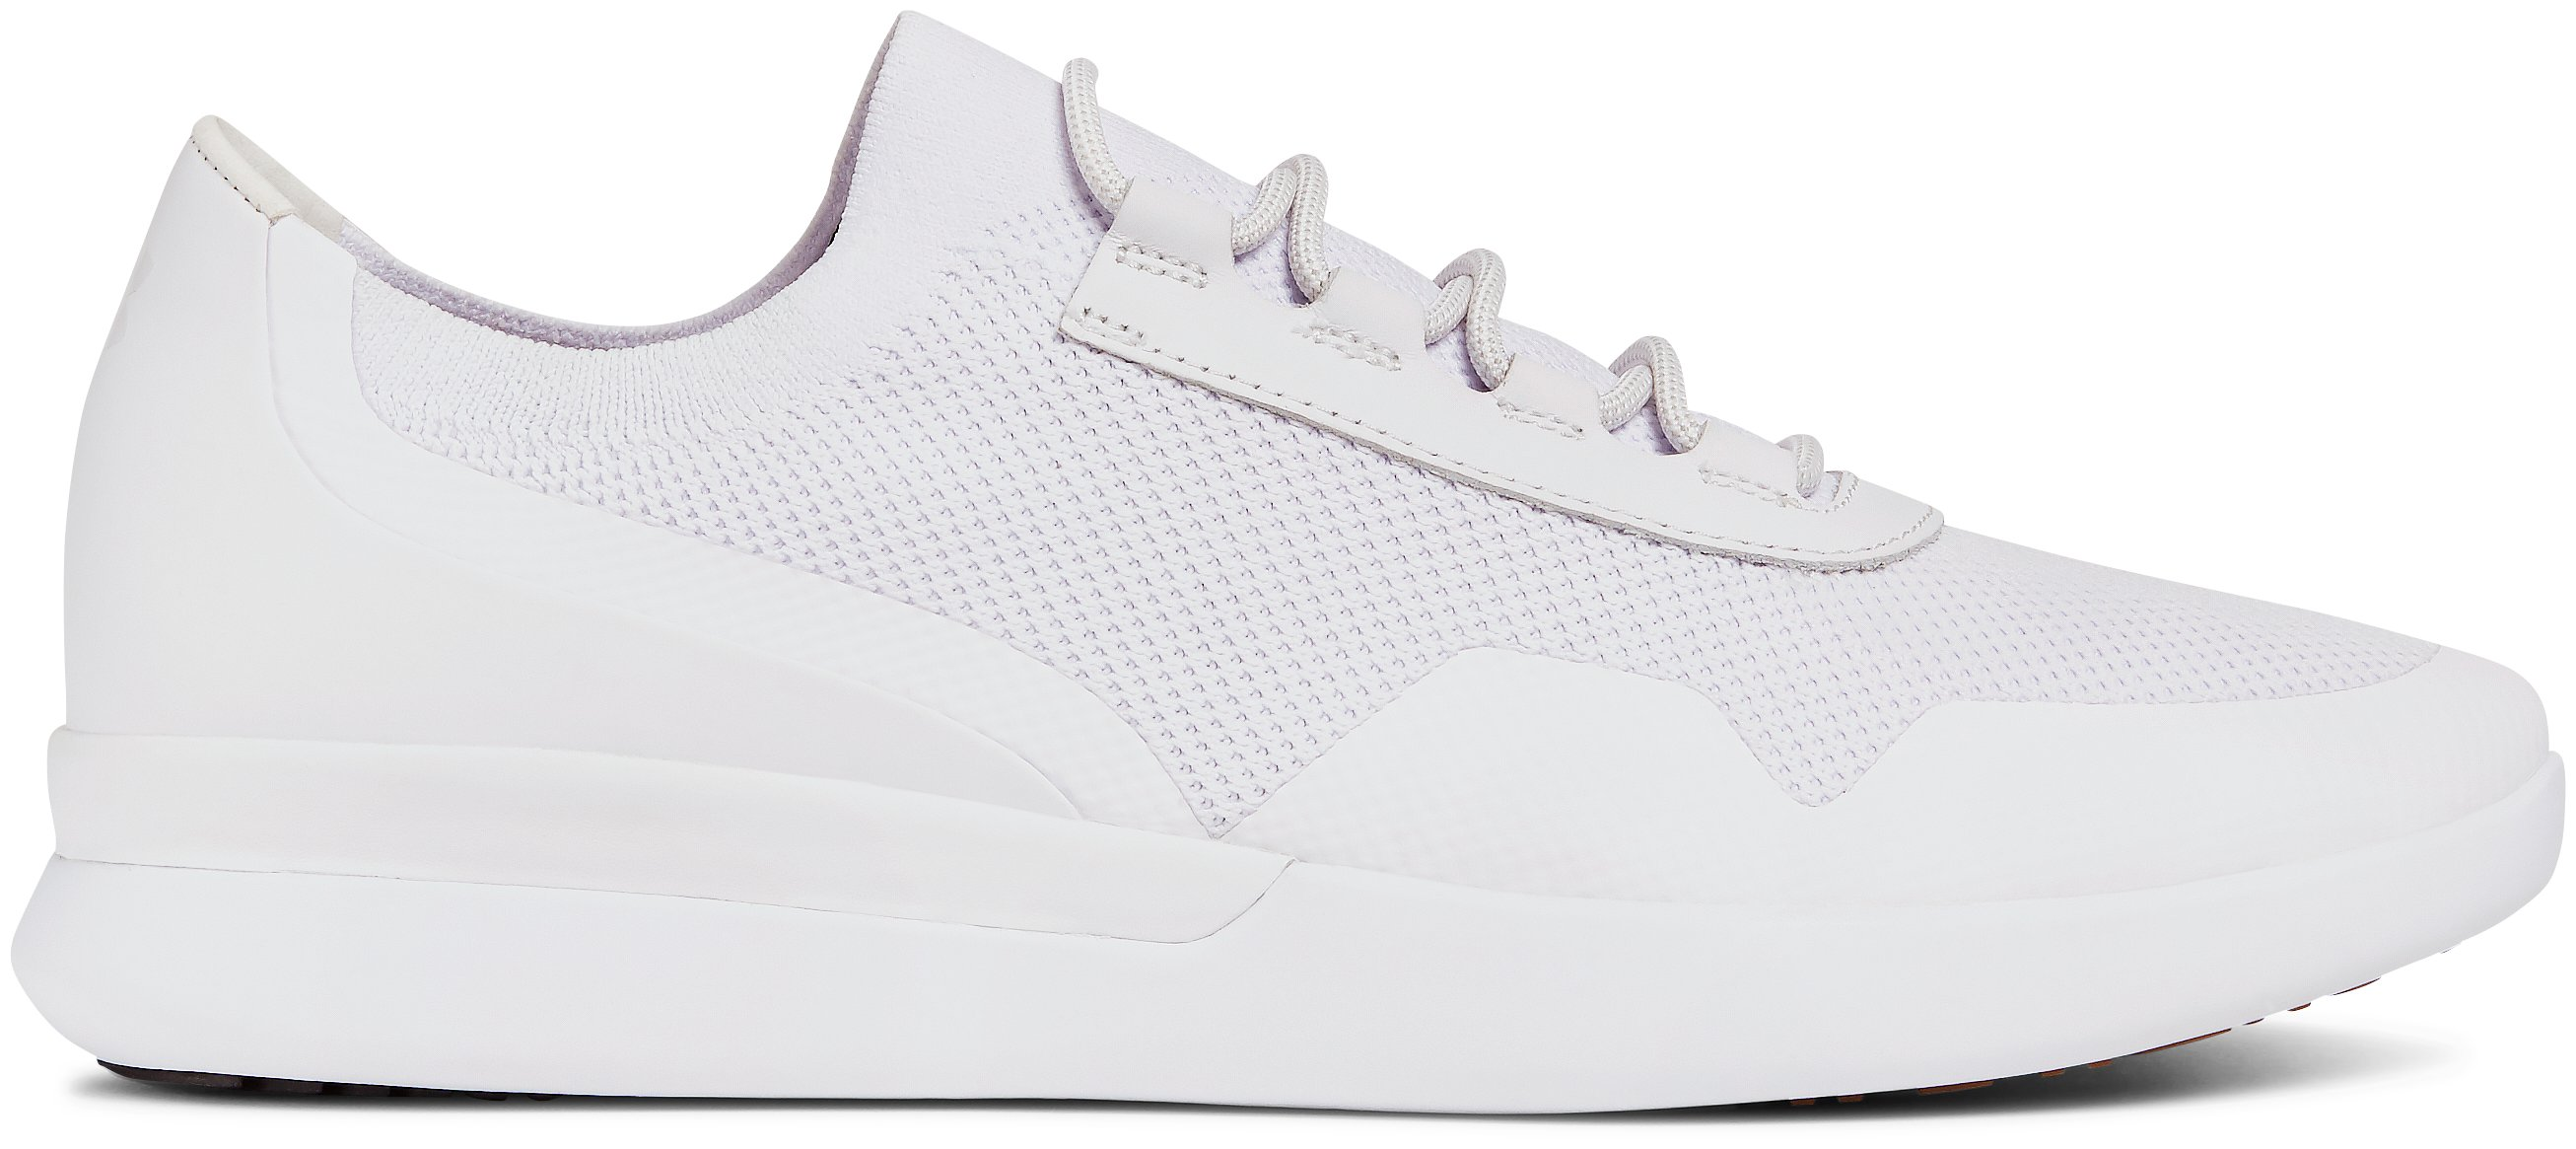 Men's UAS Runaway 2.0 - Leather Shoes, White